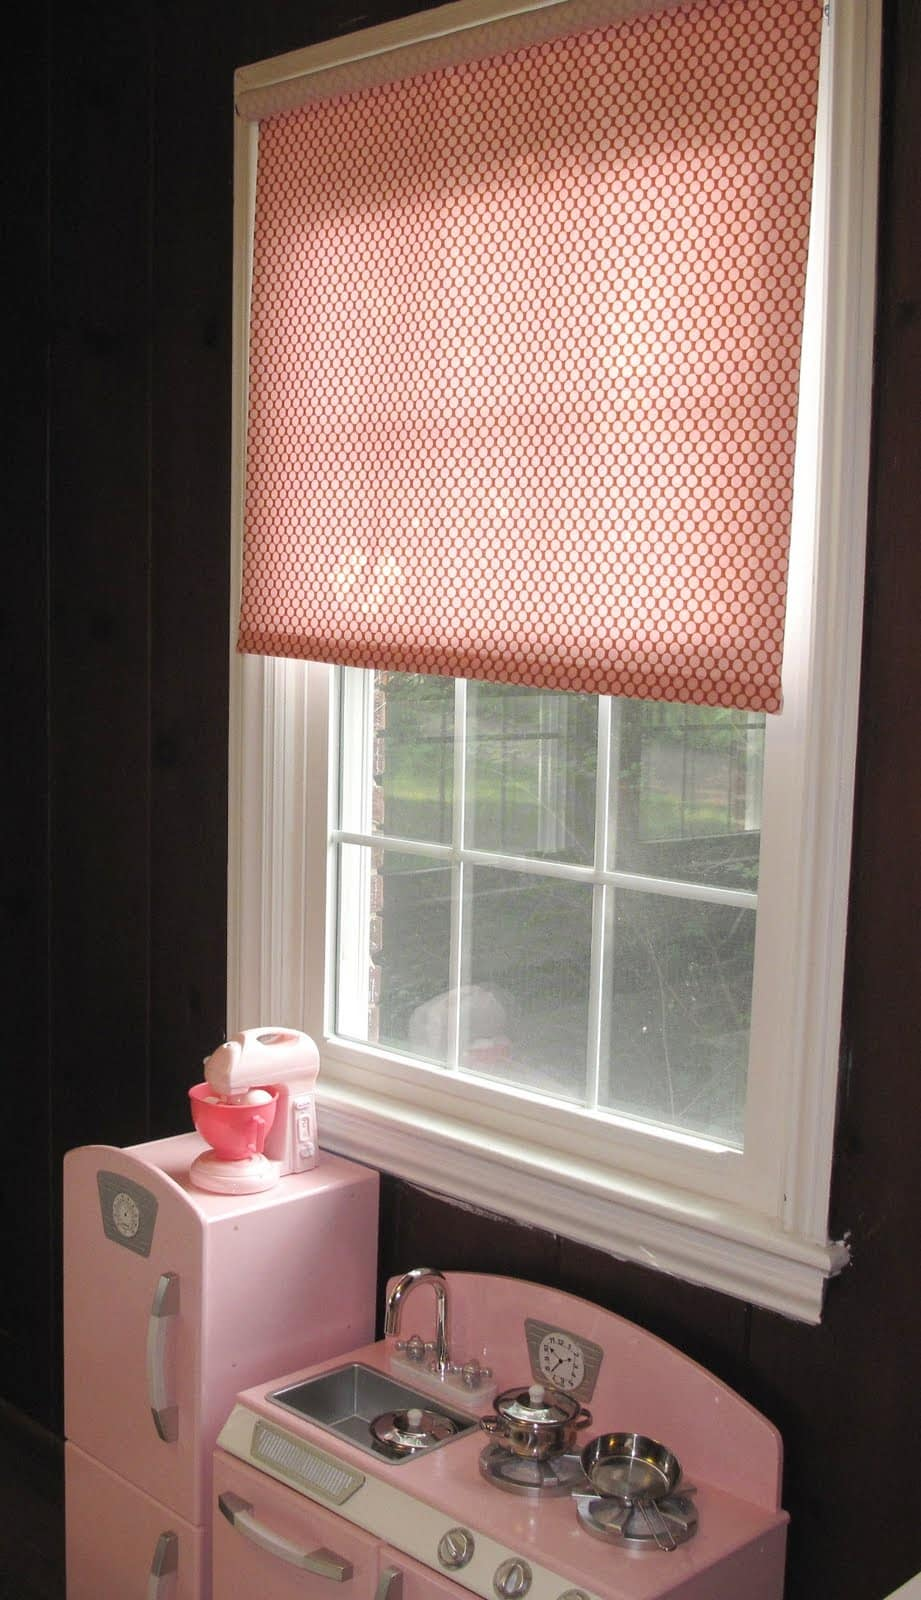 diy fabric roller shade - The Decorated Cookie